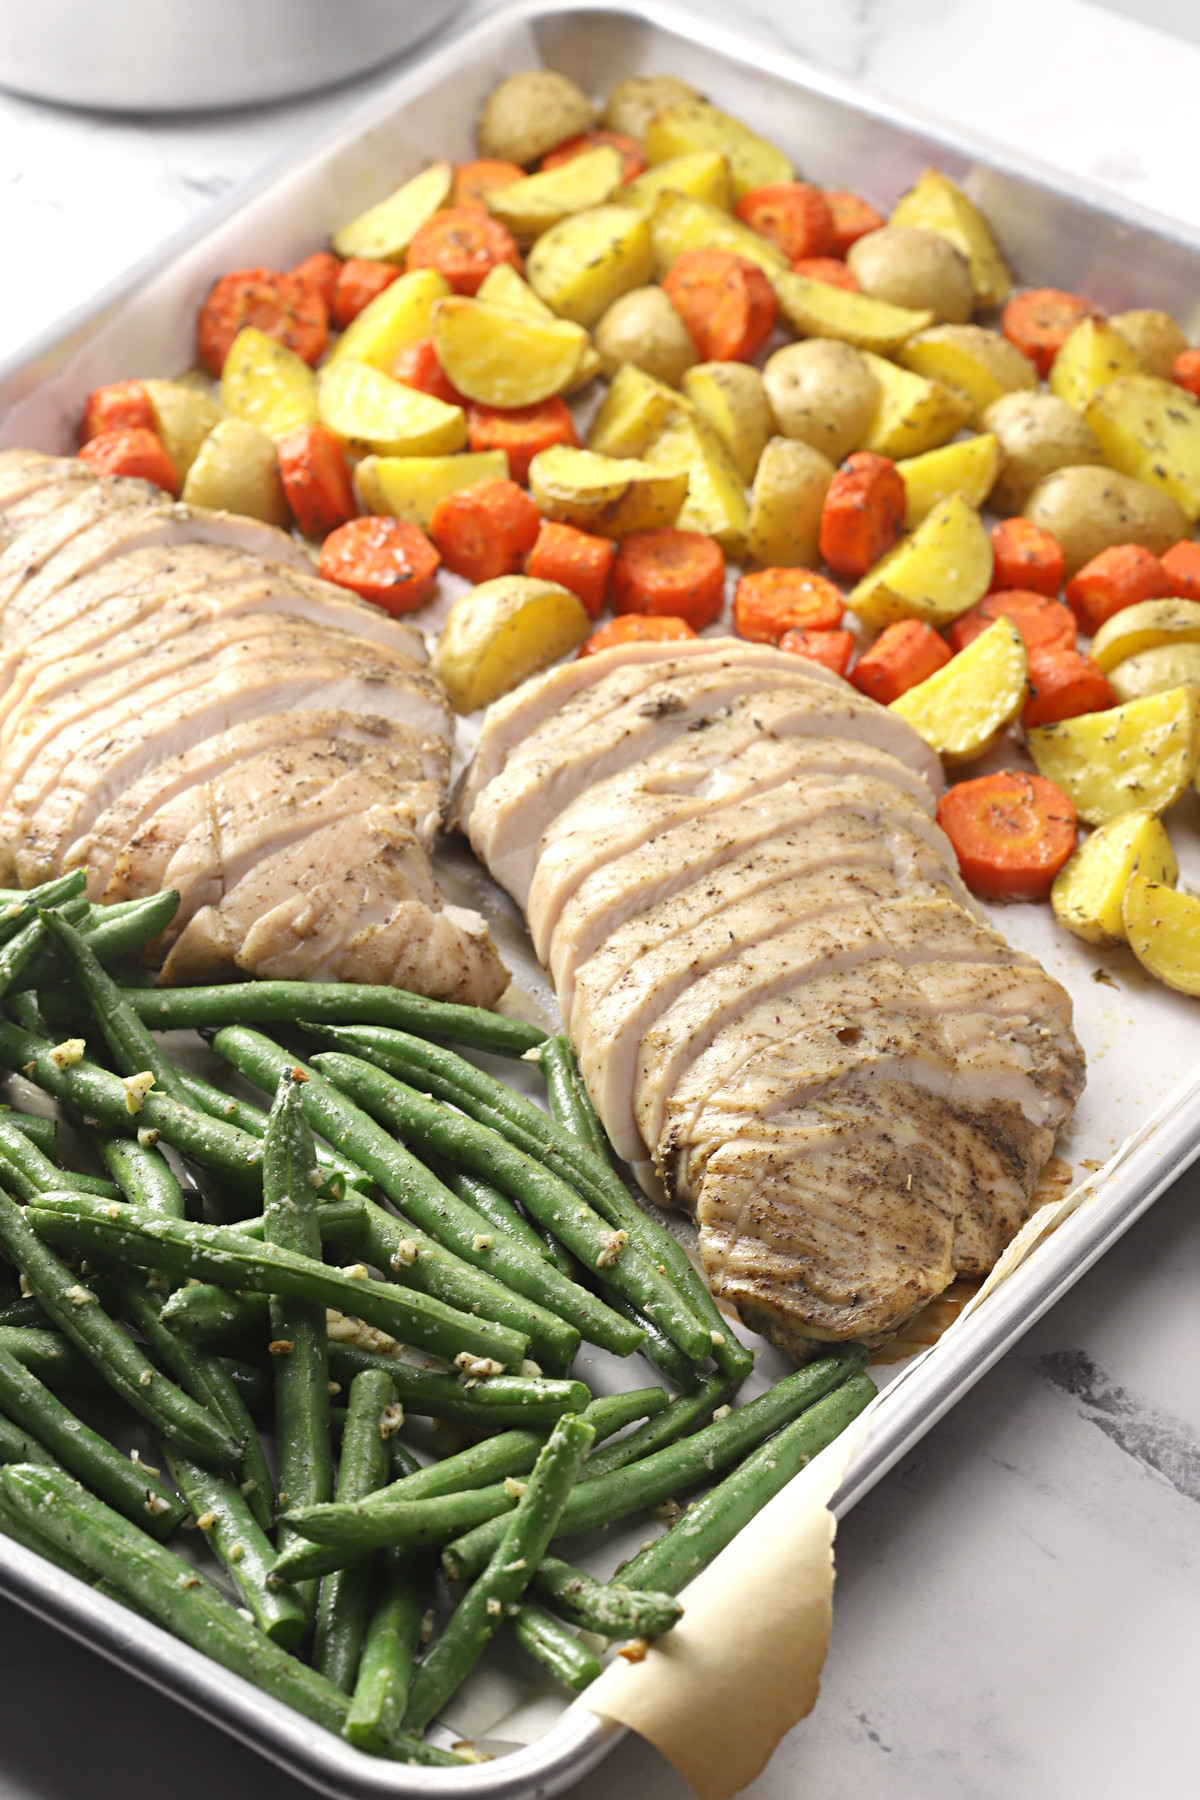 Turkey tenderloin and vegetables on a sheet pan.